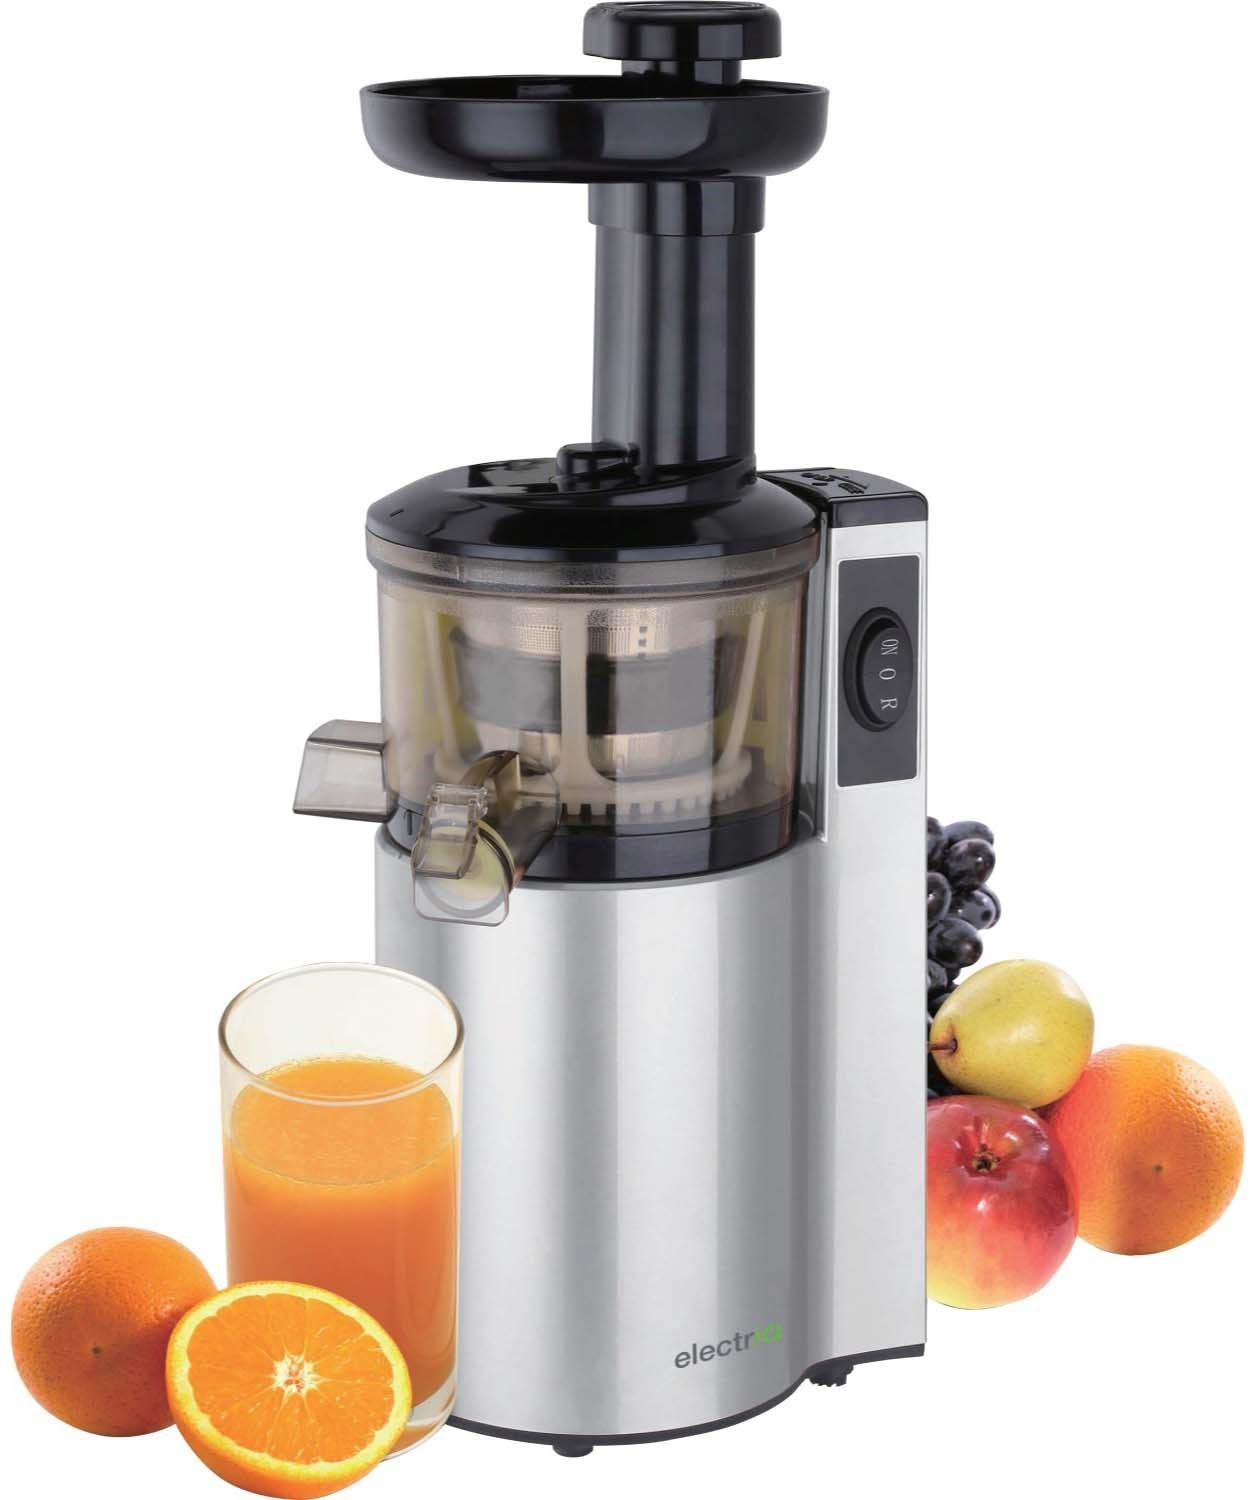 Slow Juicer Spinach : GRADE A1 - ElectriQ Premium Cold Pressed vertical Slow Juicer and Smoothie Maker - BPA Free ...